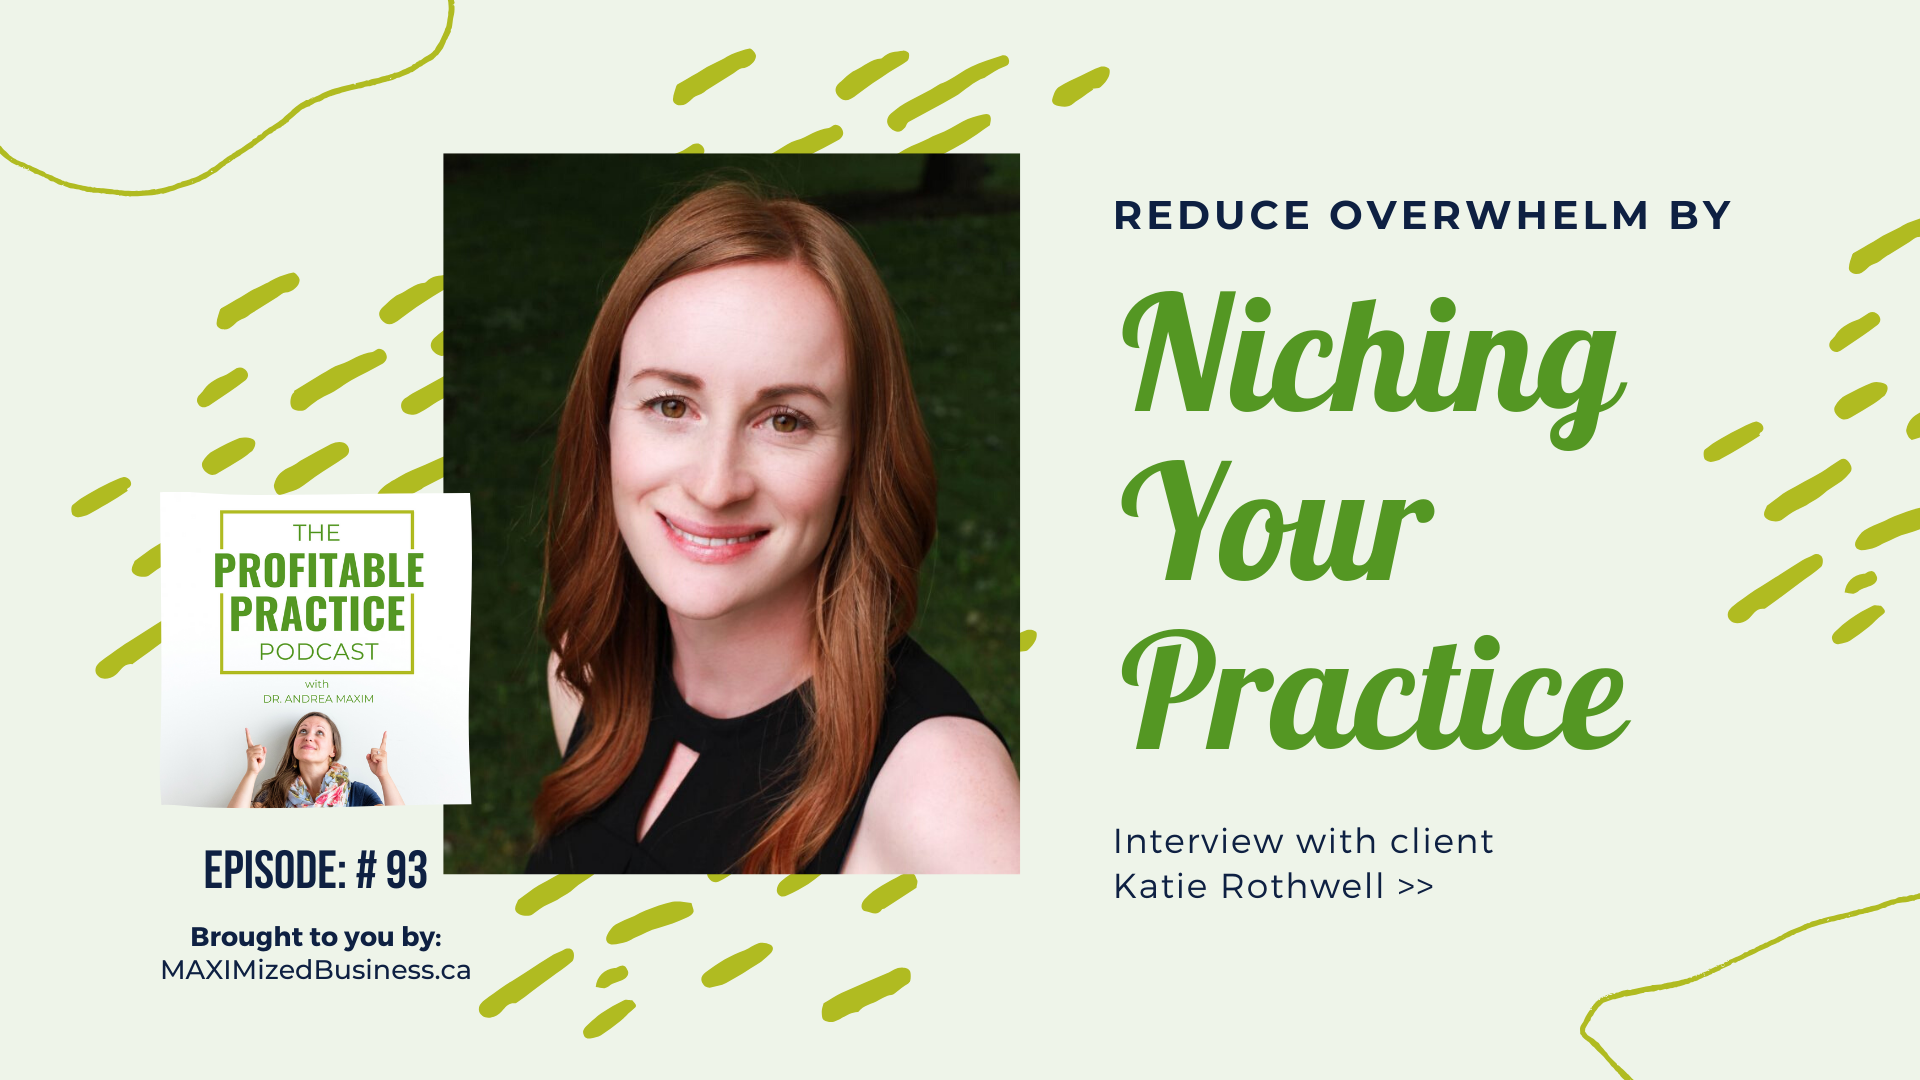 Reduce Overwhelm by Niching Your Practice: Interview with Dr. Katie Rothwell, ND [Ep. #093]